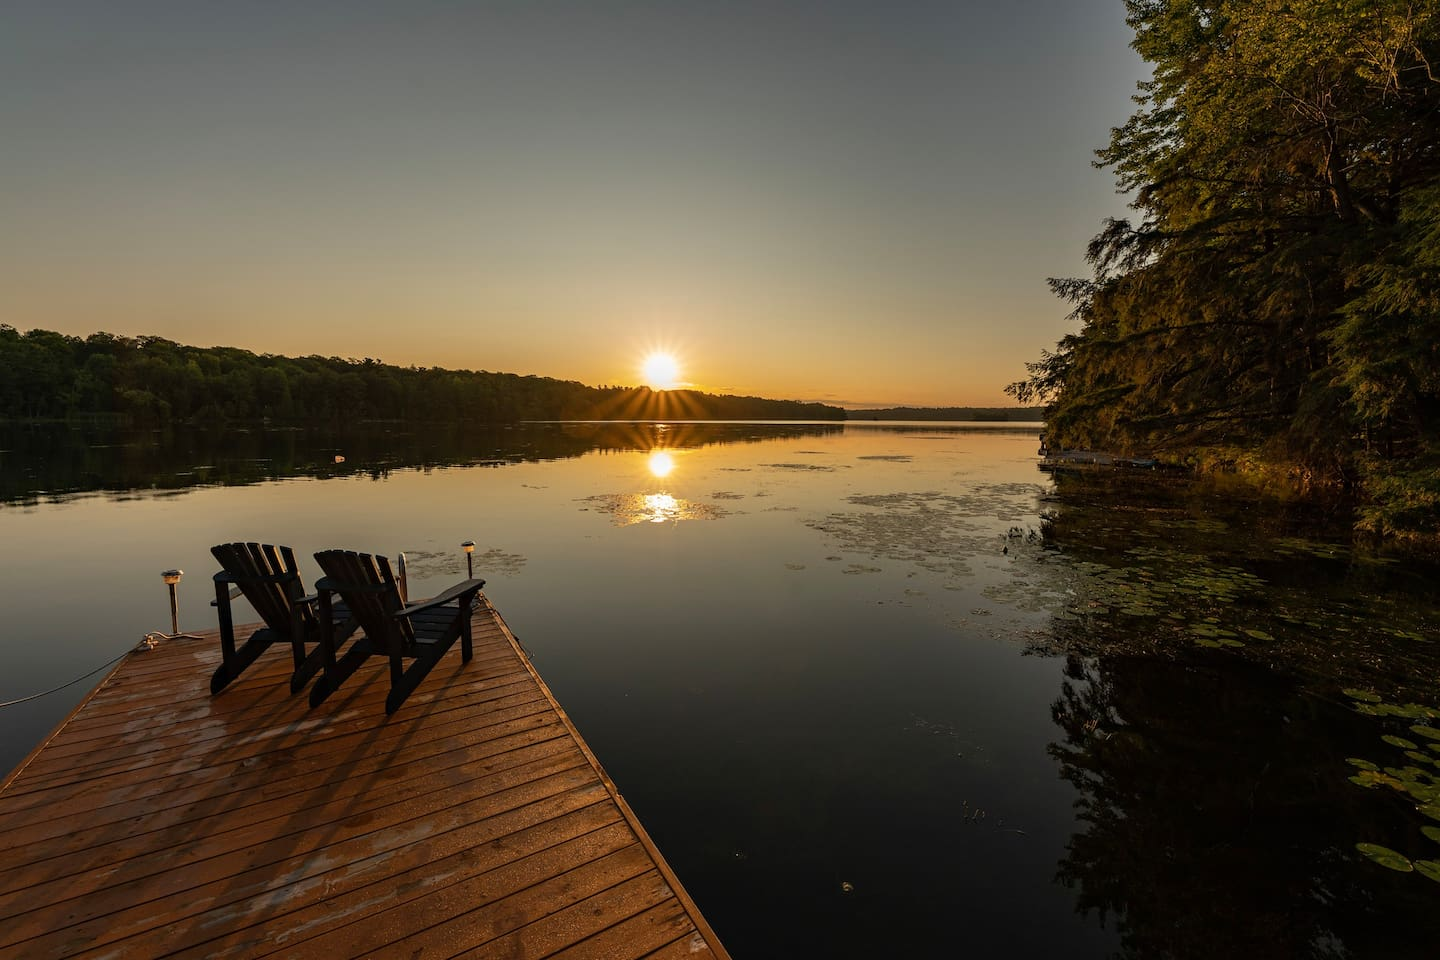 Sunrise at Indian Lake B&B brings the promise of a day of rest, relaxation and beautiful interactions with nature along the pristine waterways of the Rideau.  Come experience a very special getaway that you will not forget.